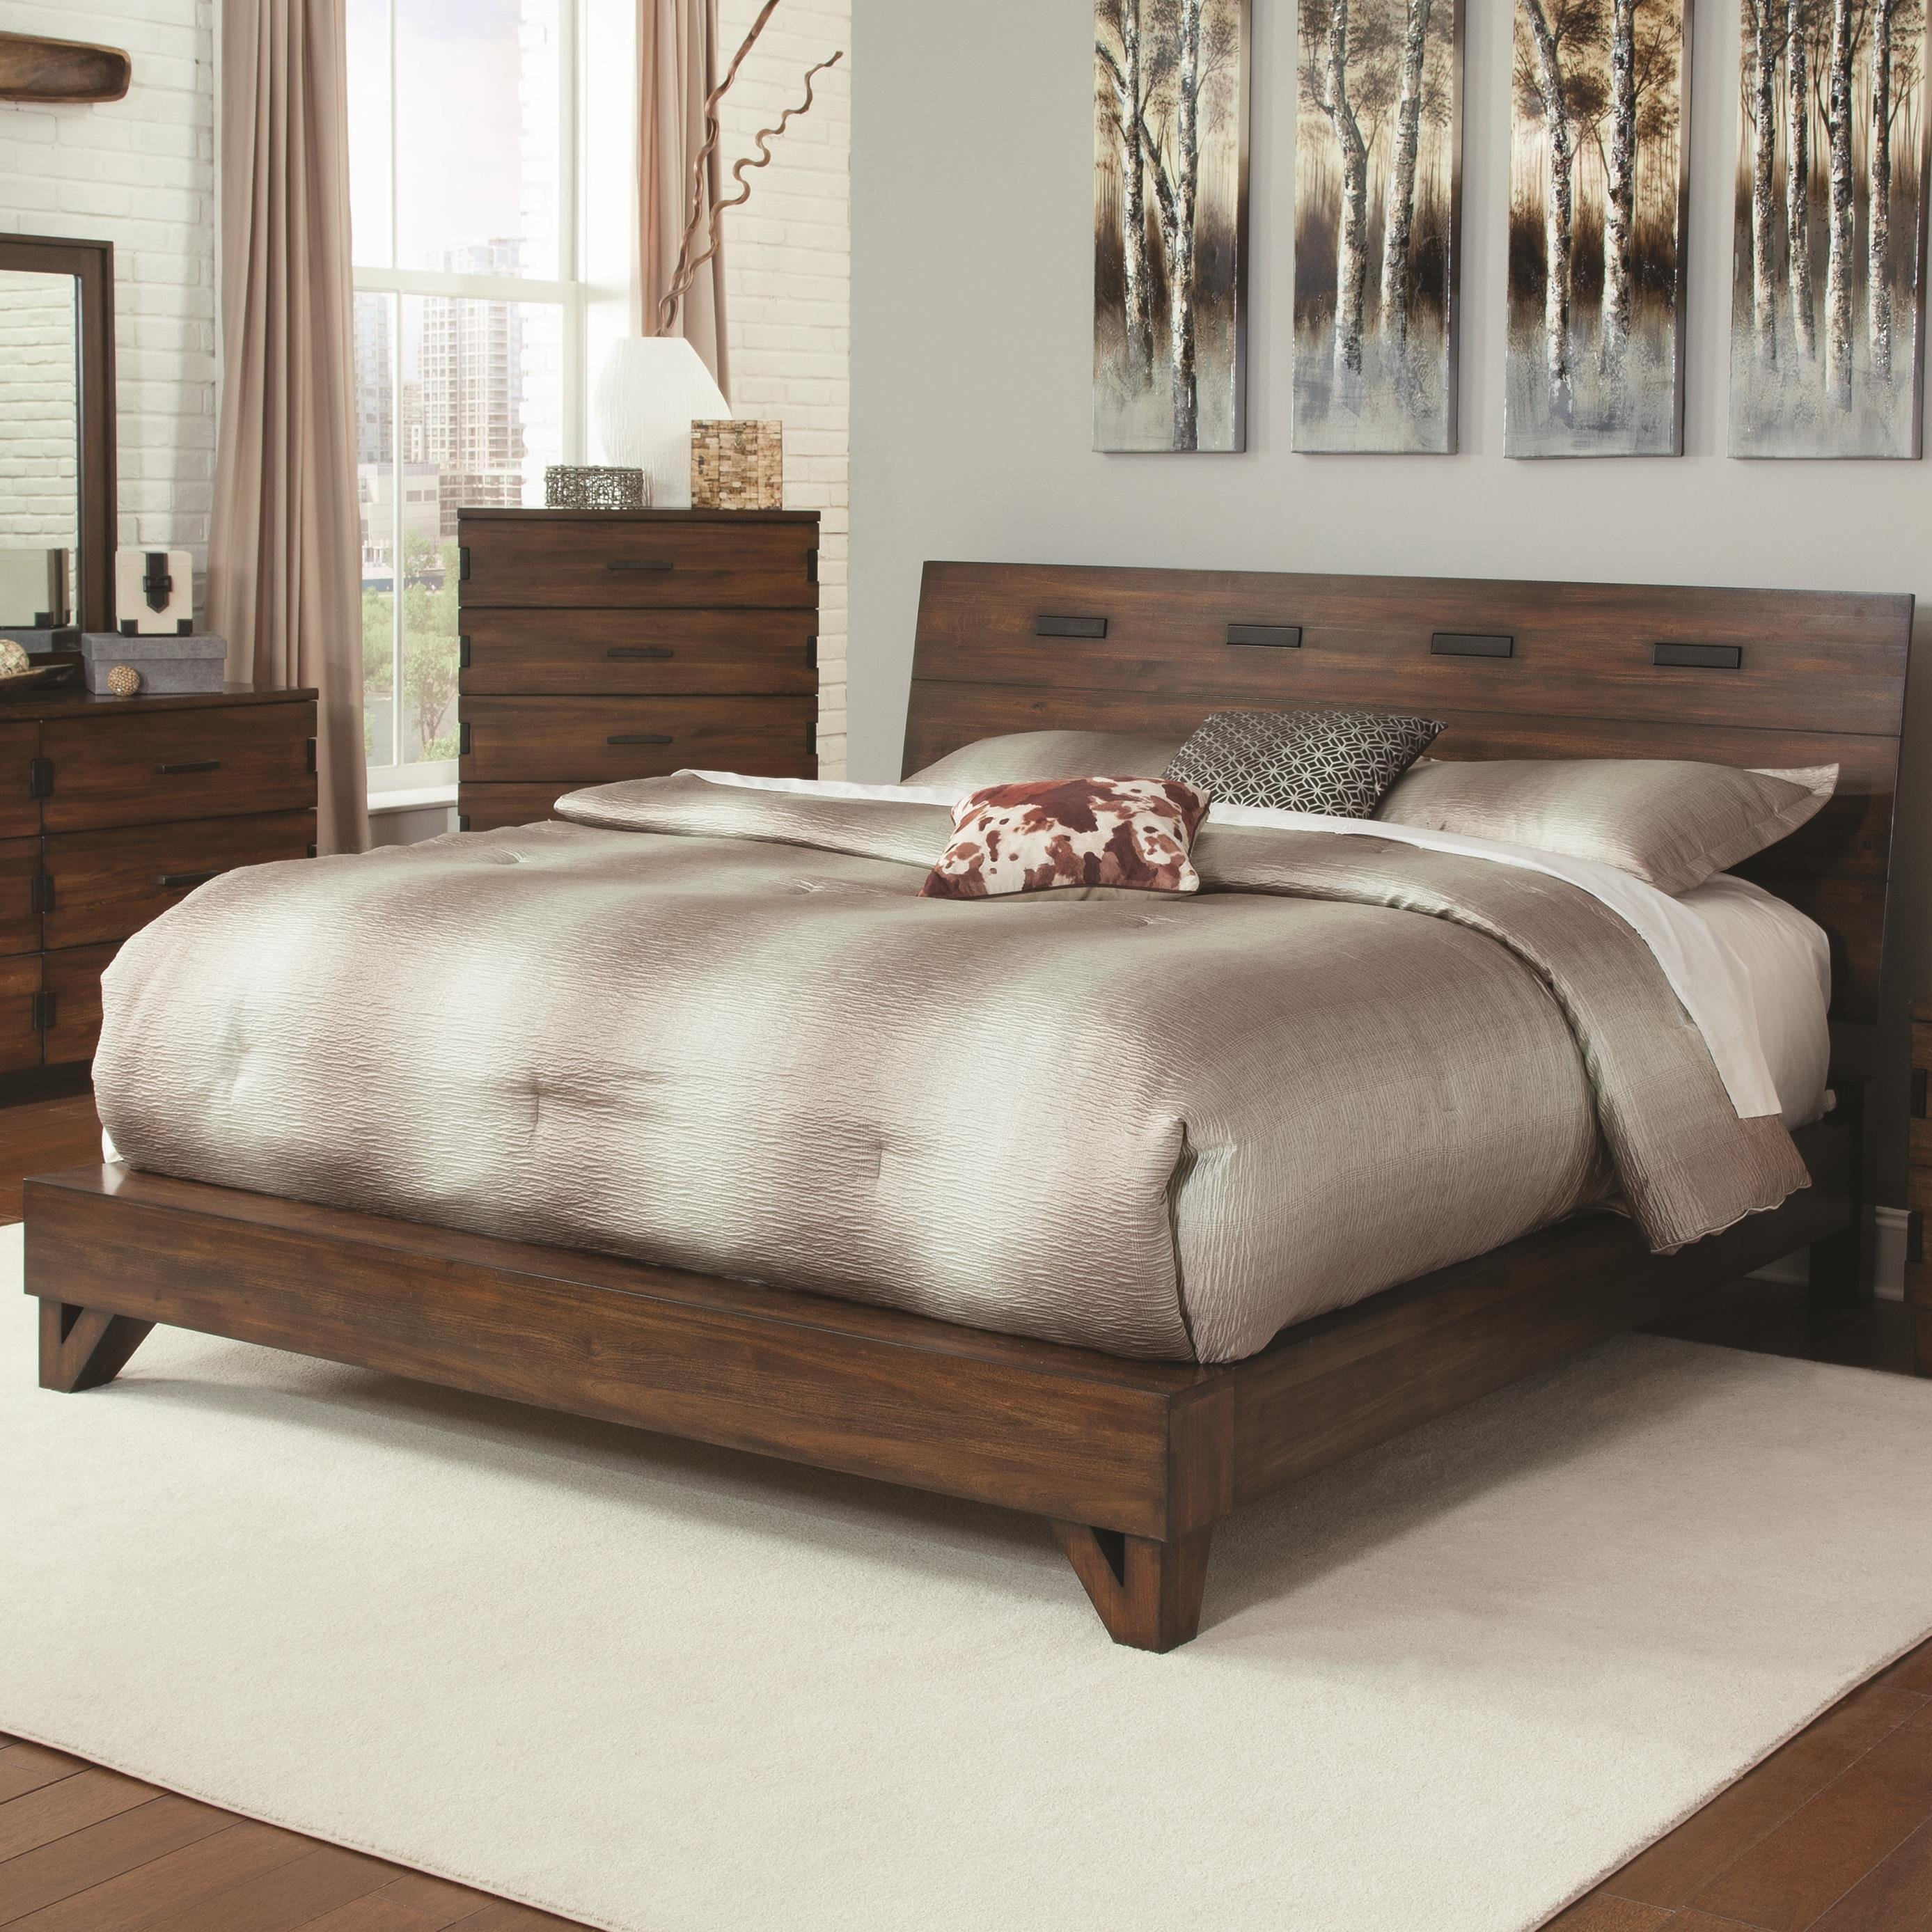 Best Fine Furniture Yorkshire 204851Ke Rustic King Bed With With Pictures